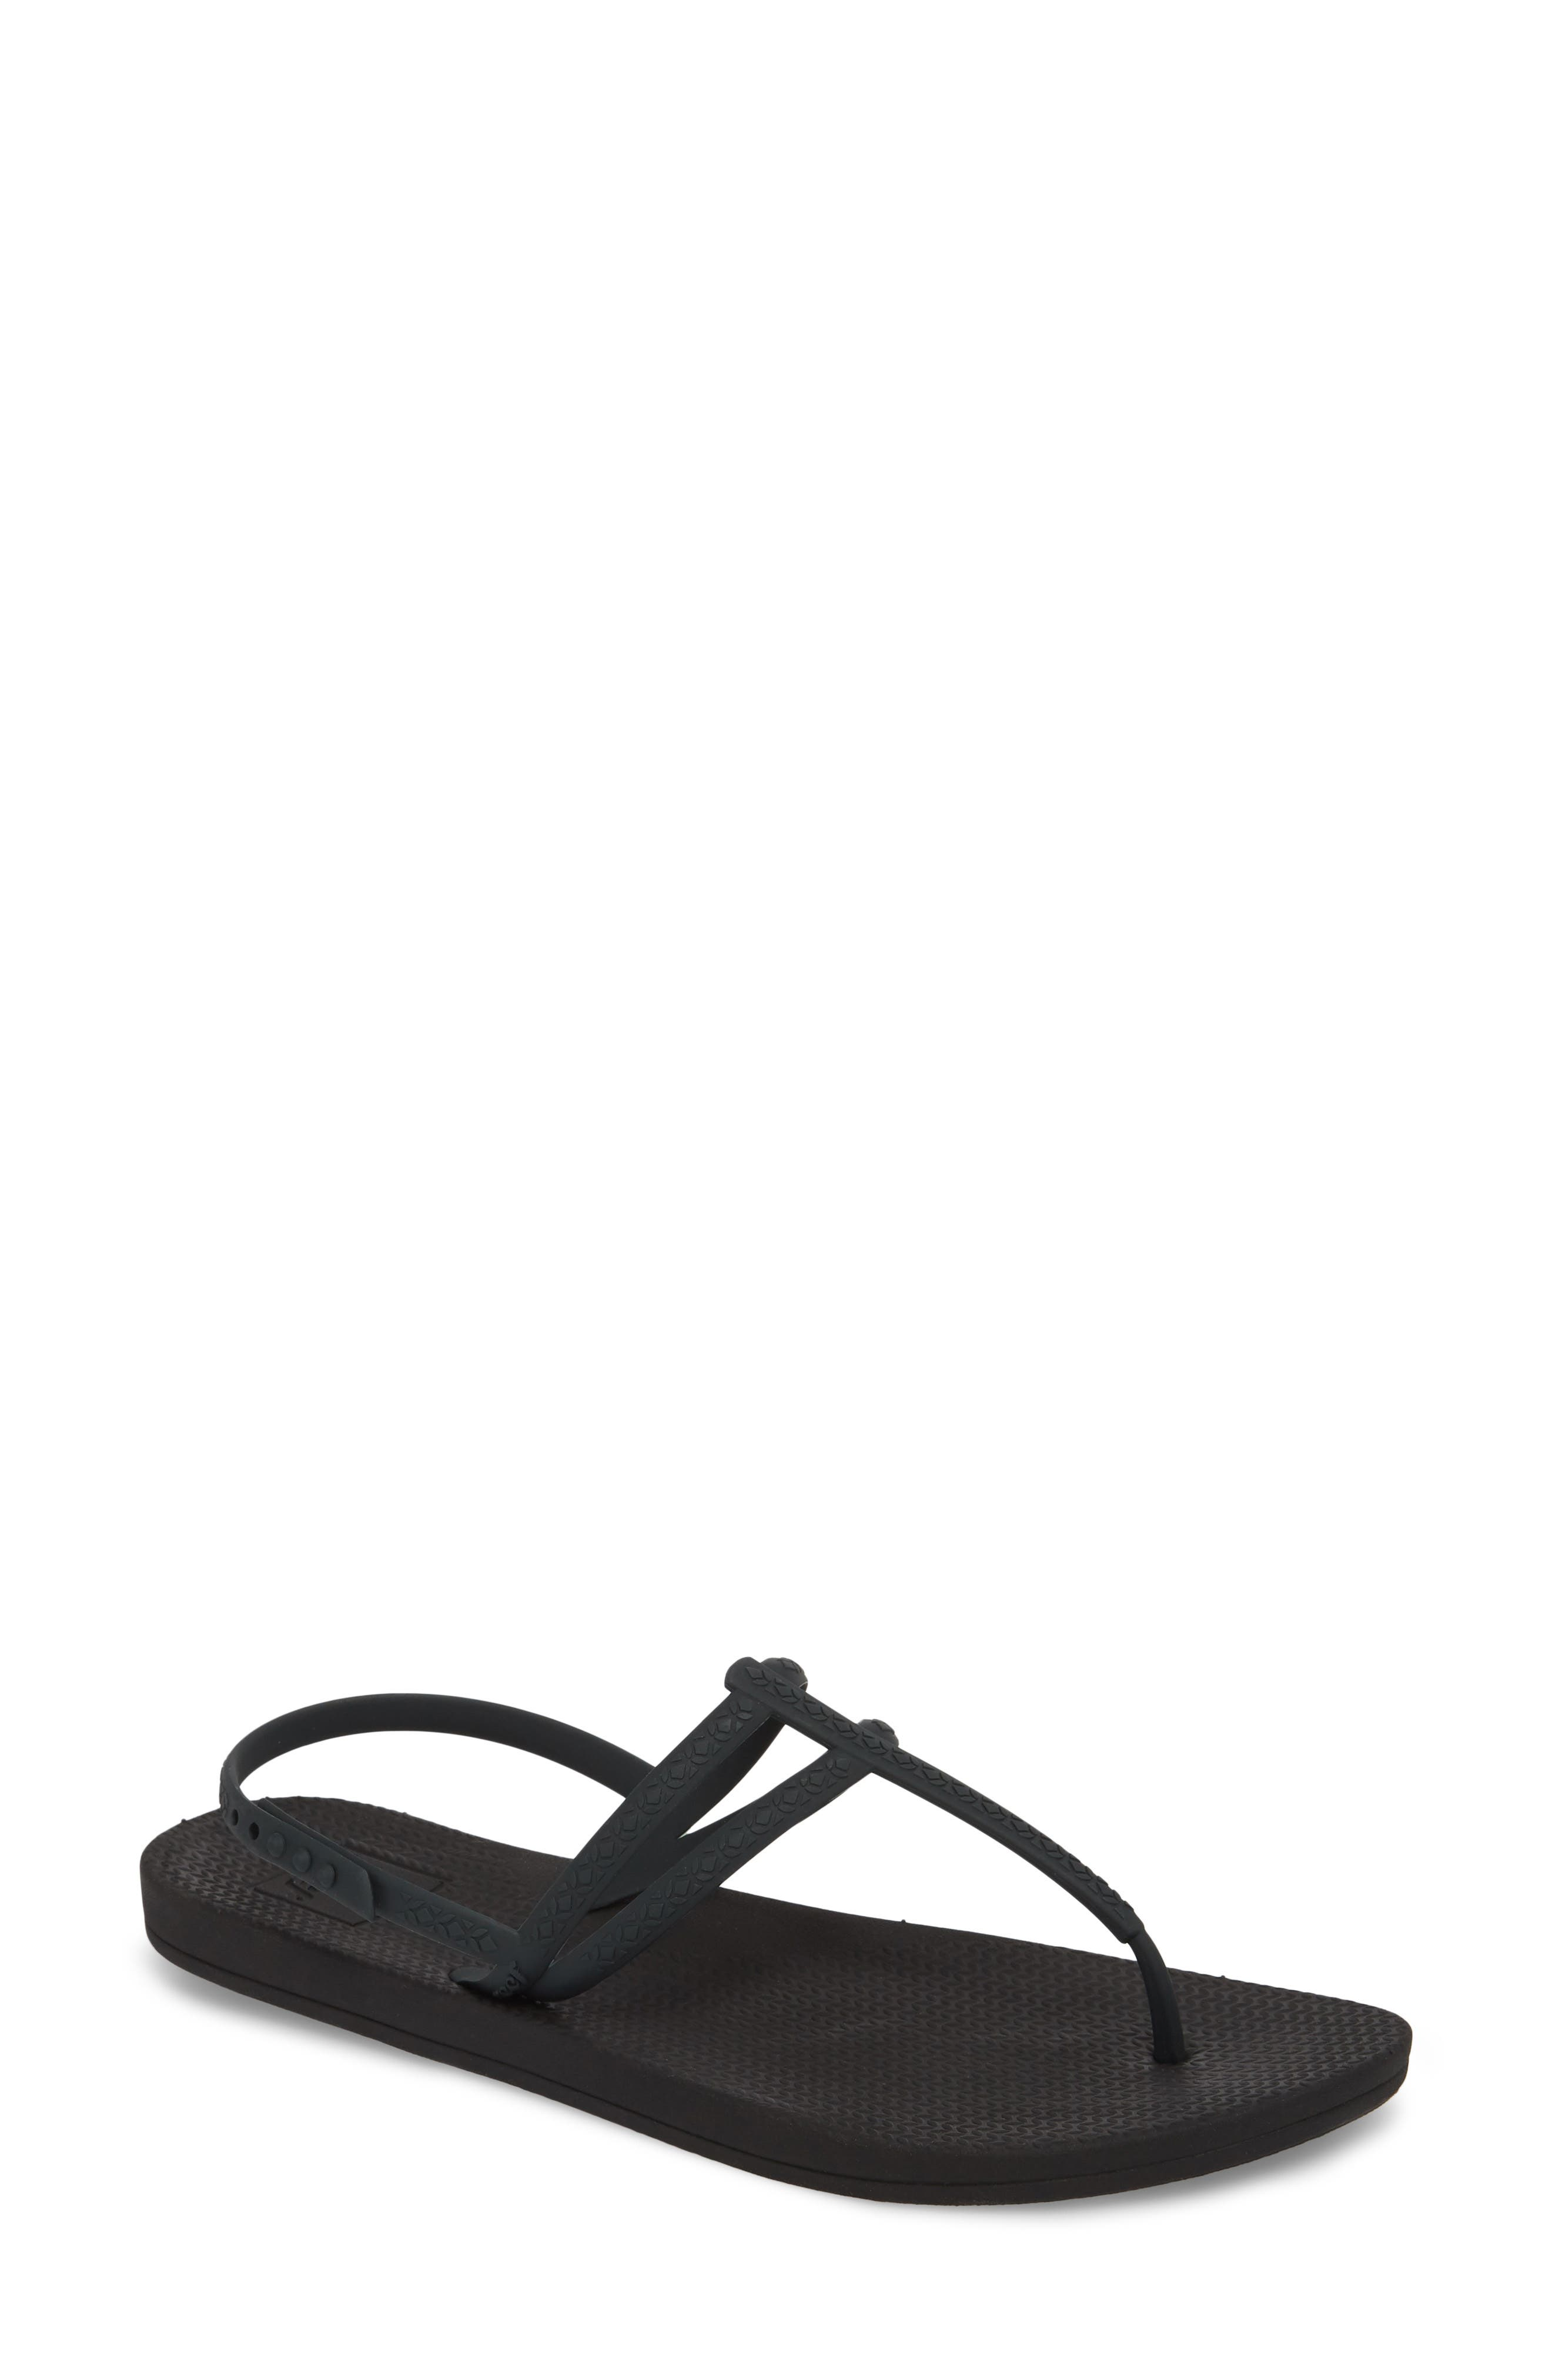 Escape Lux T-Strap Sandal,                         Main,                         color, Black